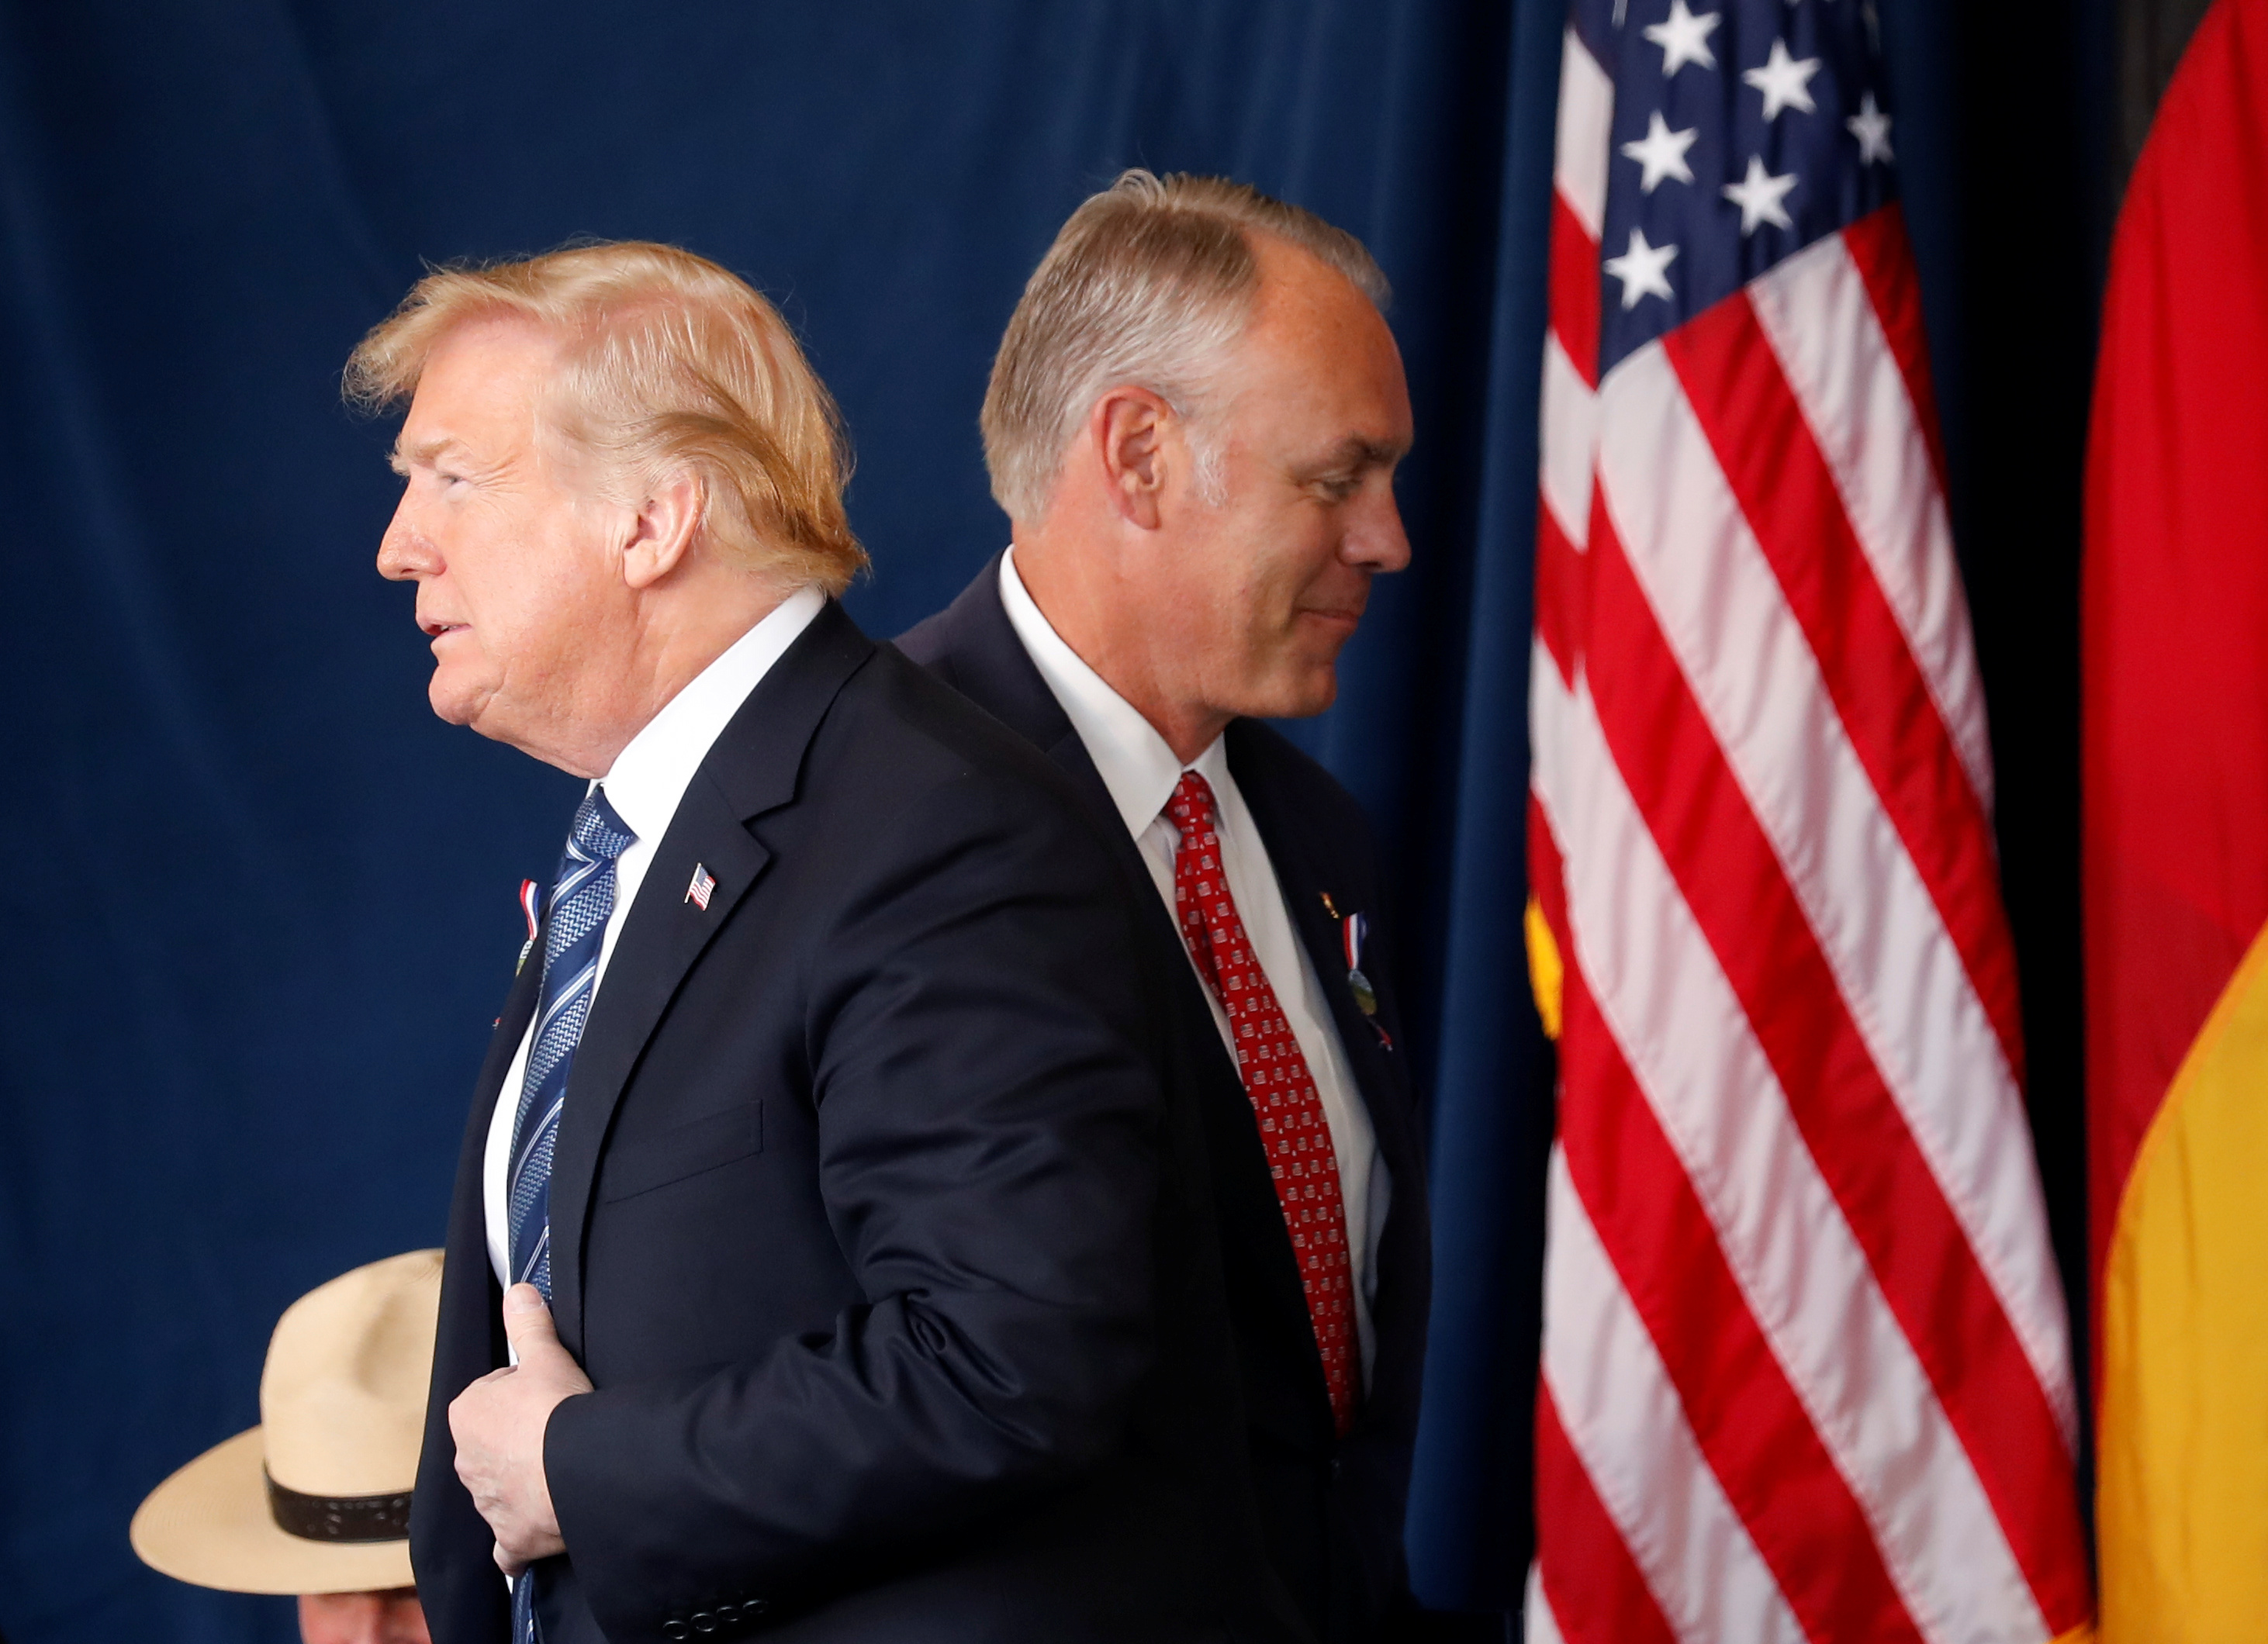 U.S. President Donald Trump walks past Interior Secretary Ryan Zinke as he stands to address the 17th annual September 11 observance at the Flight 93 National Memorial near Shanksville, Pennsylvania. REUTERS/Kevin Lamarque - RC1ACE32E510